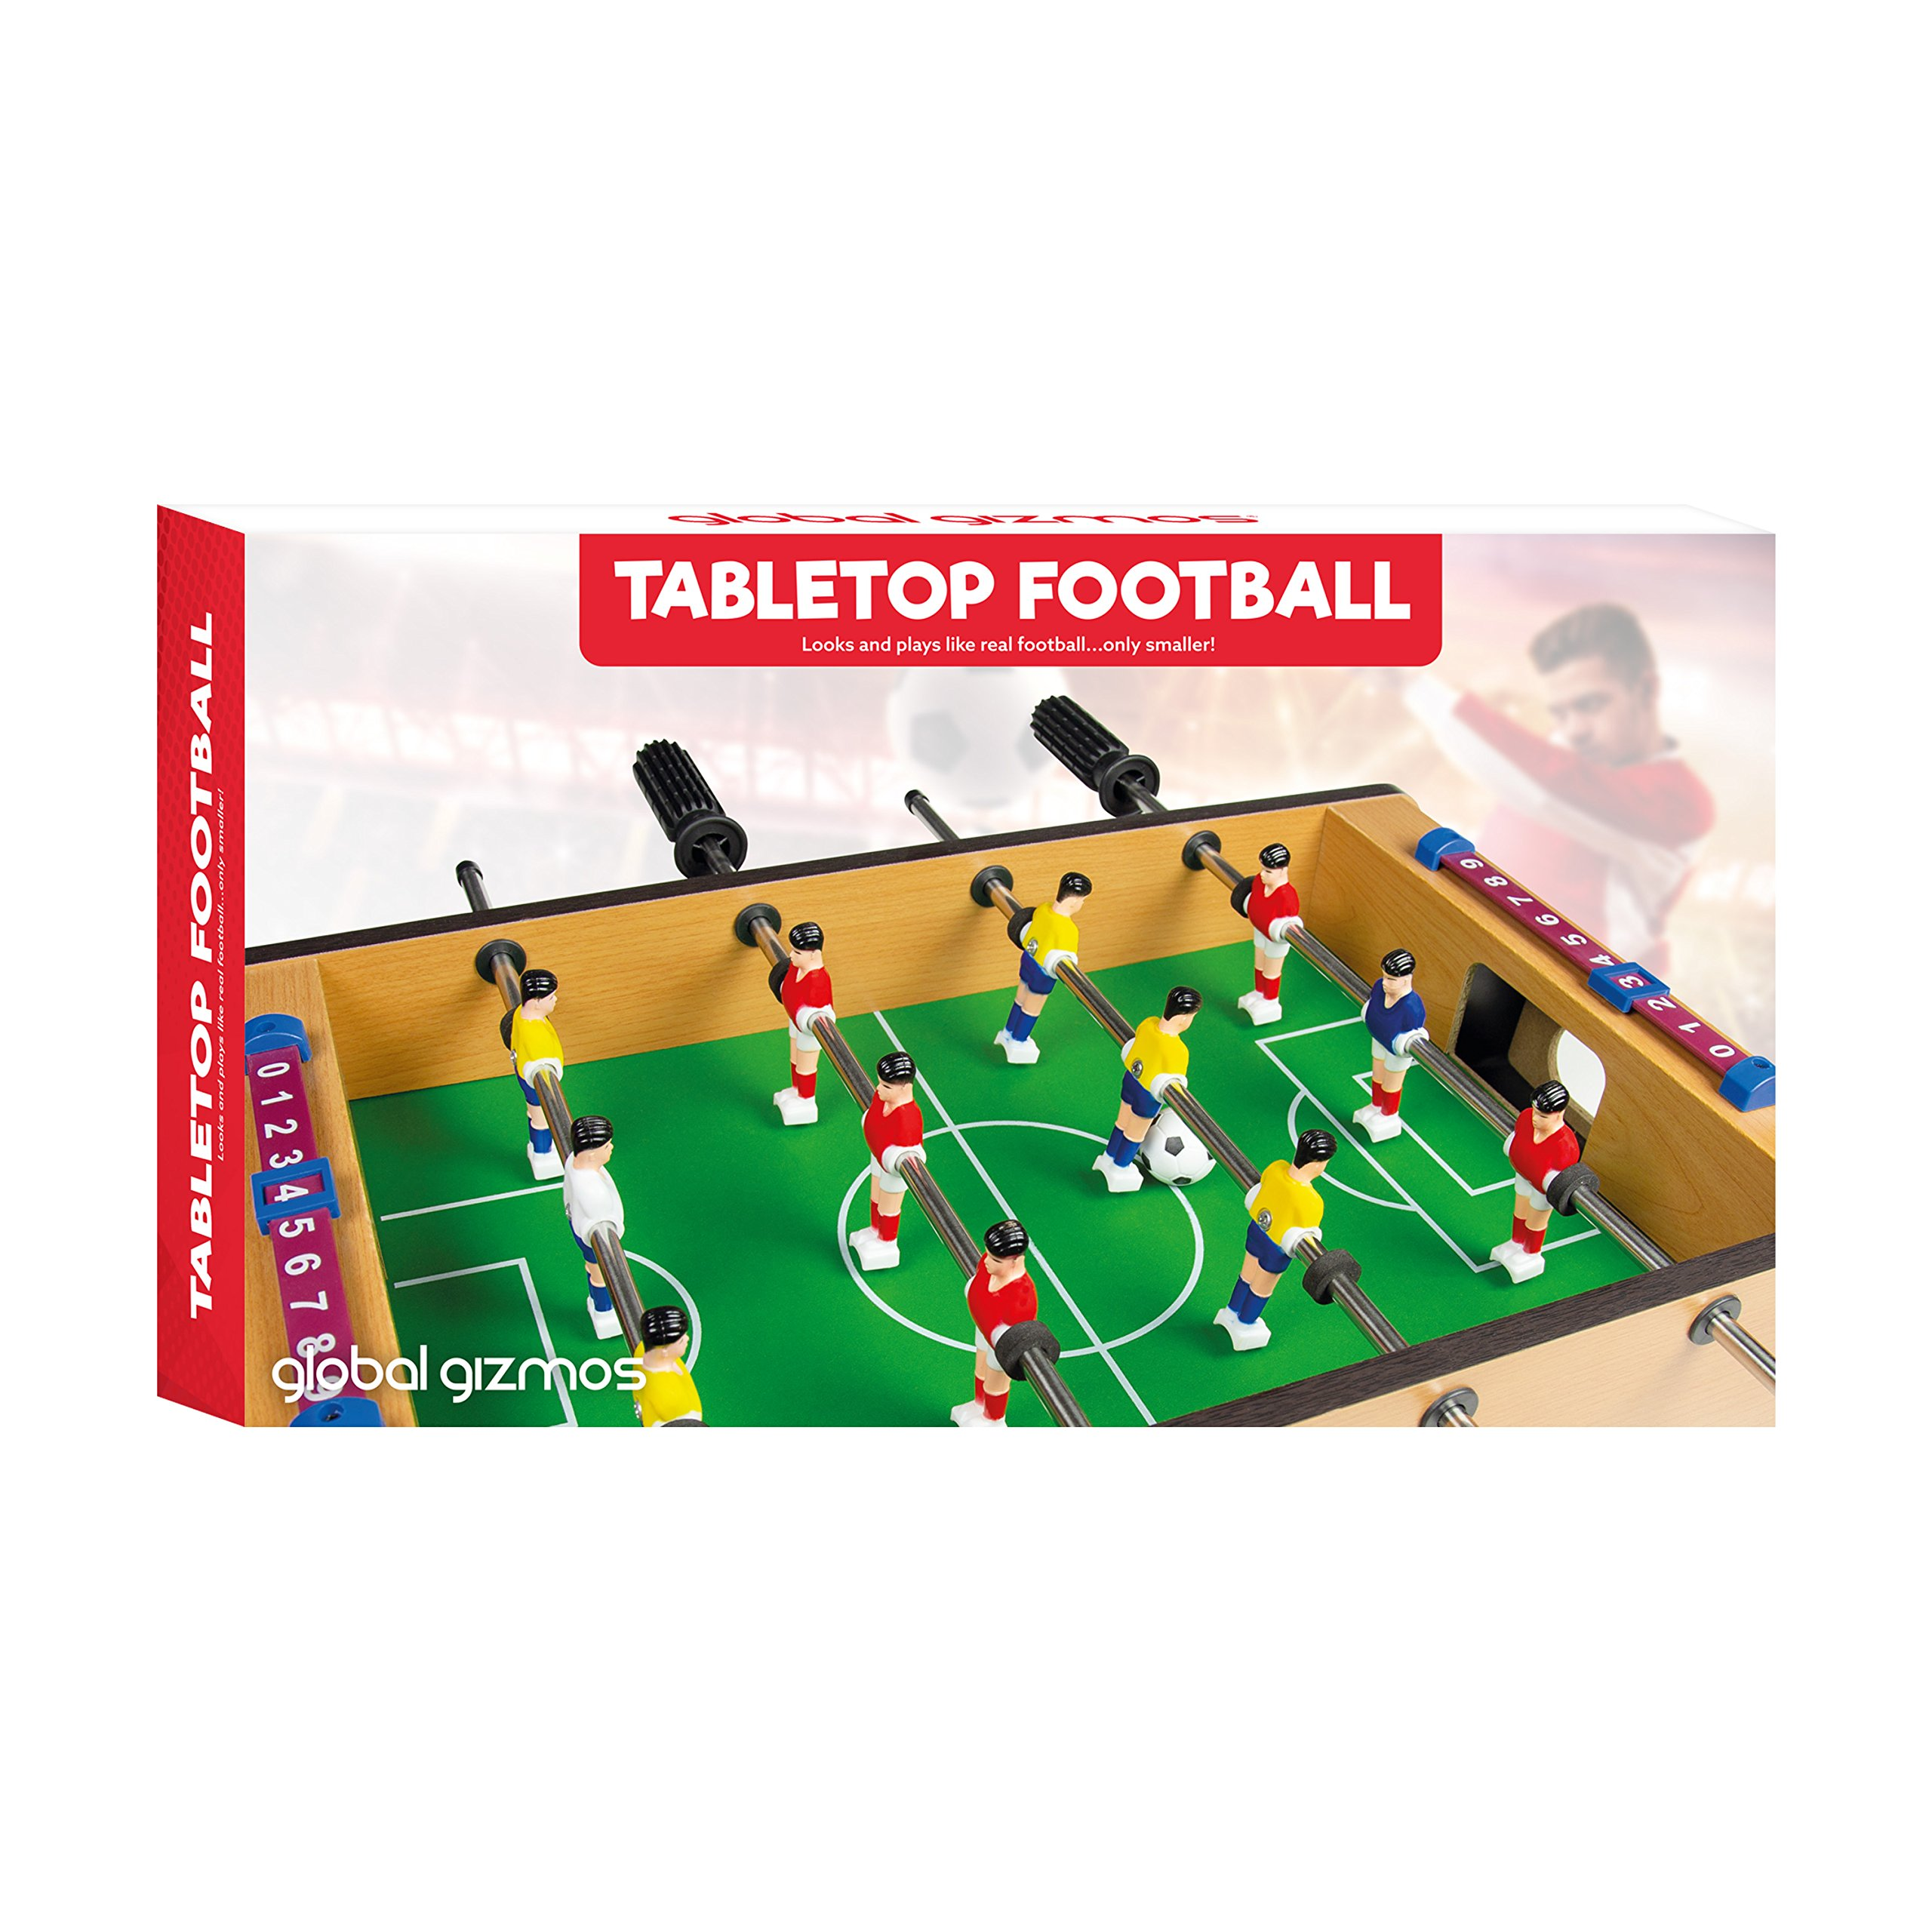 Global Gizmos Table Top Football Foosball Game by Global Gizmos ...